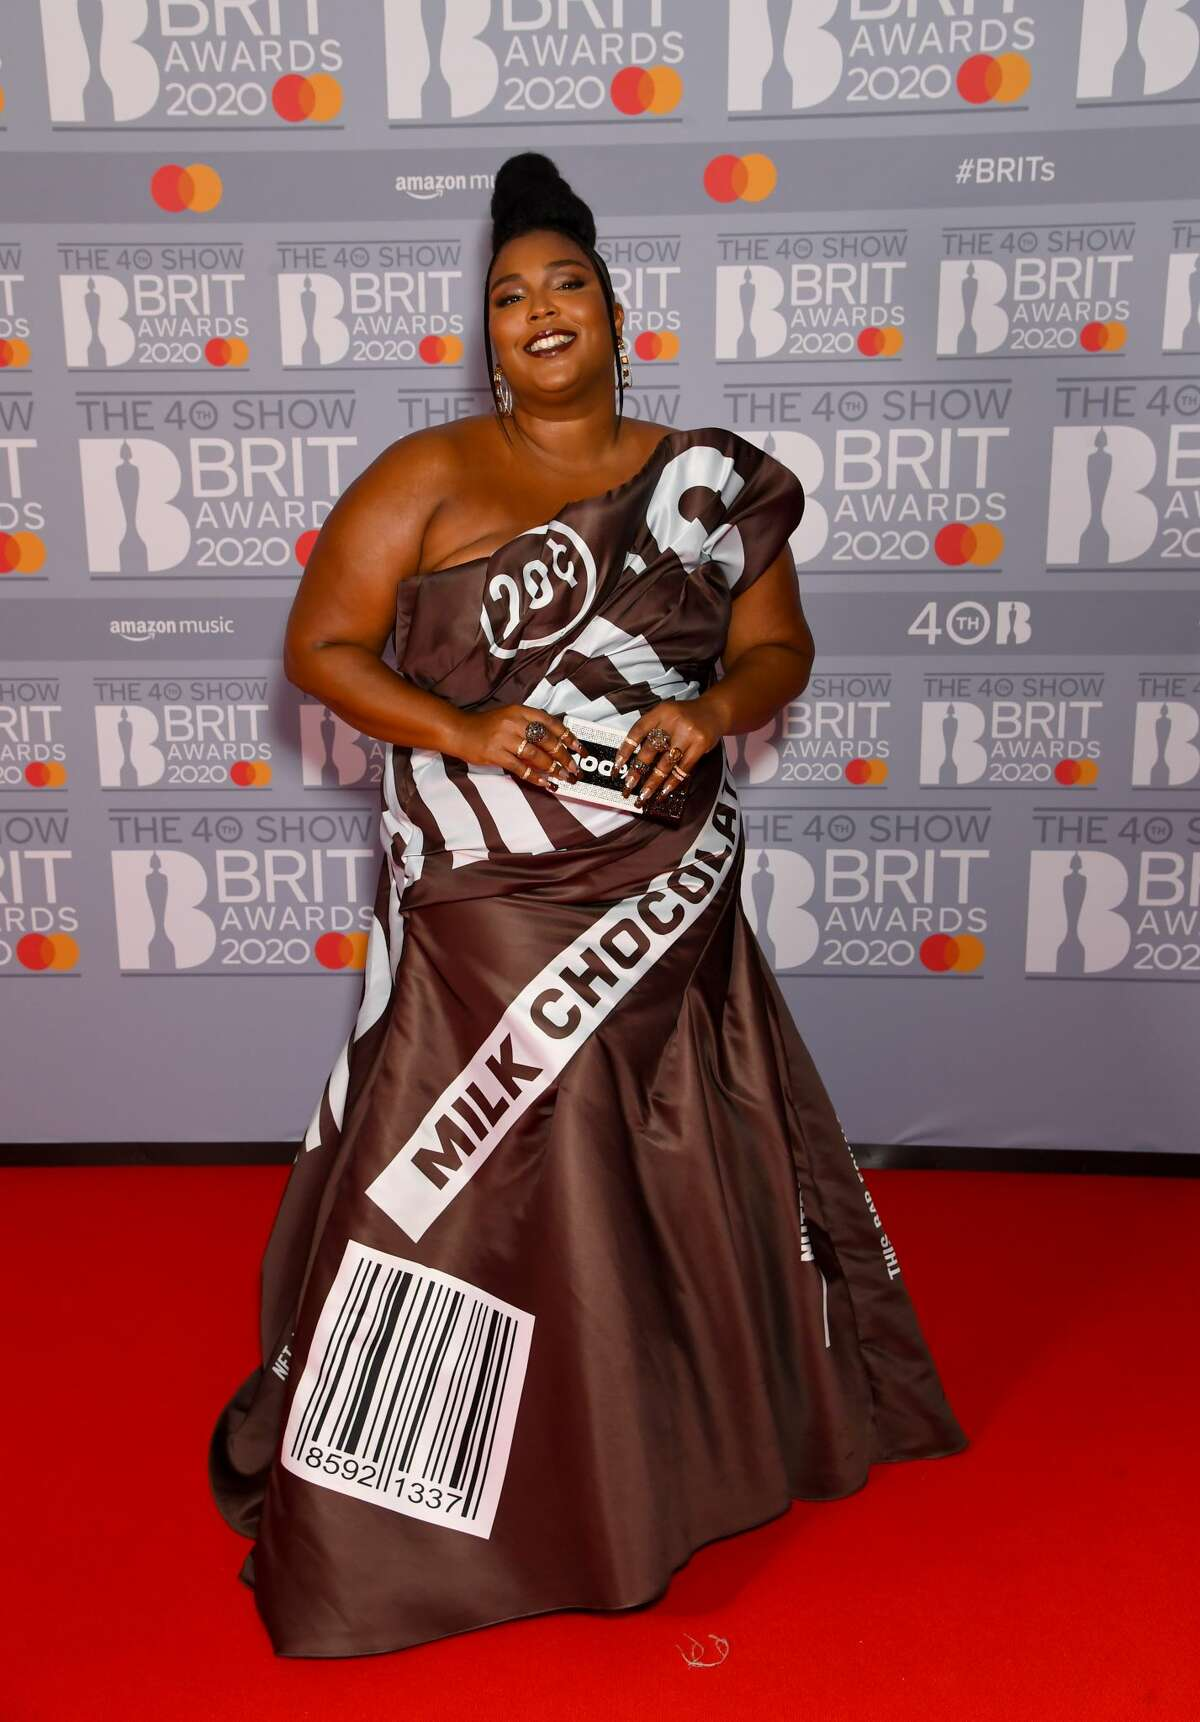 LONDON, ENGLAND - FEBRUARY 18: (EDITORIAL USE ONLY) Lizzo attends The BRIT Awards 2020 at The O2 Arena on February 18, 2020 in London, England. (Photo by Dave J Hogan/Getty Images)